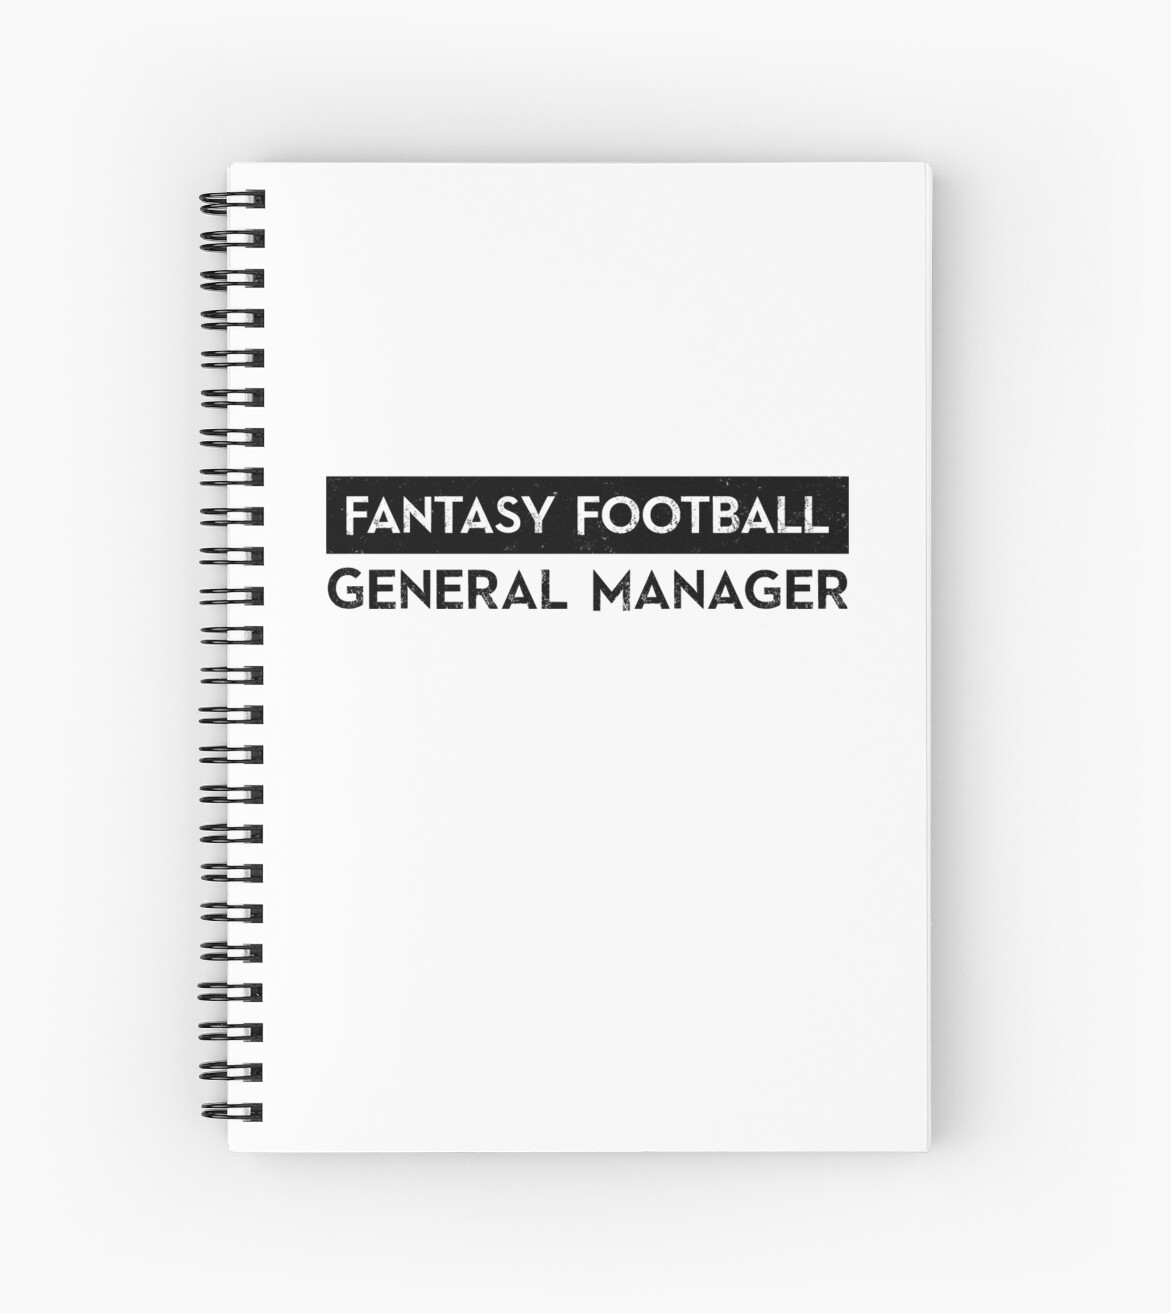 Fantasy Football by typeo